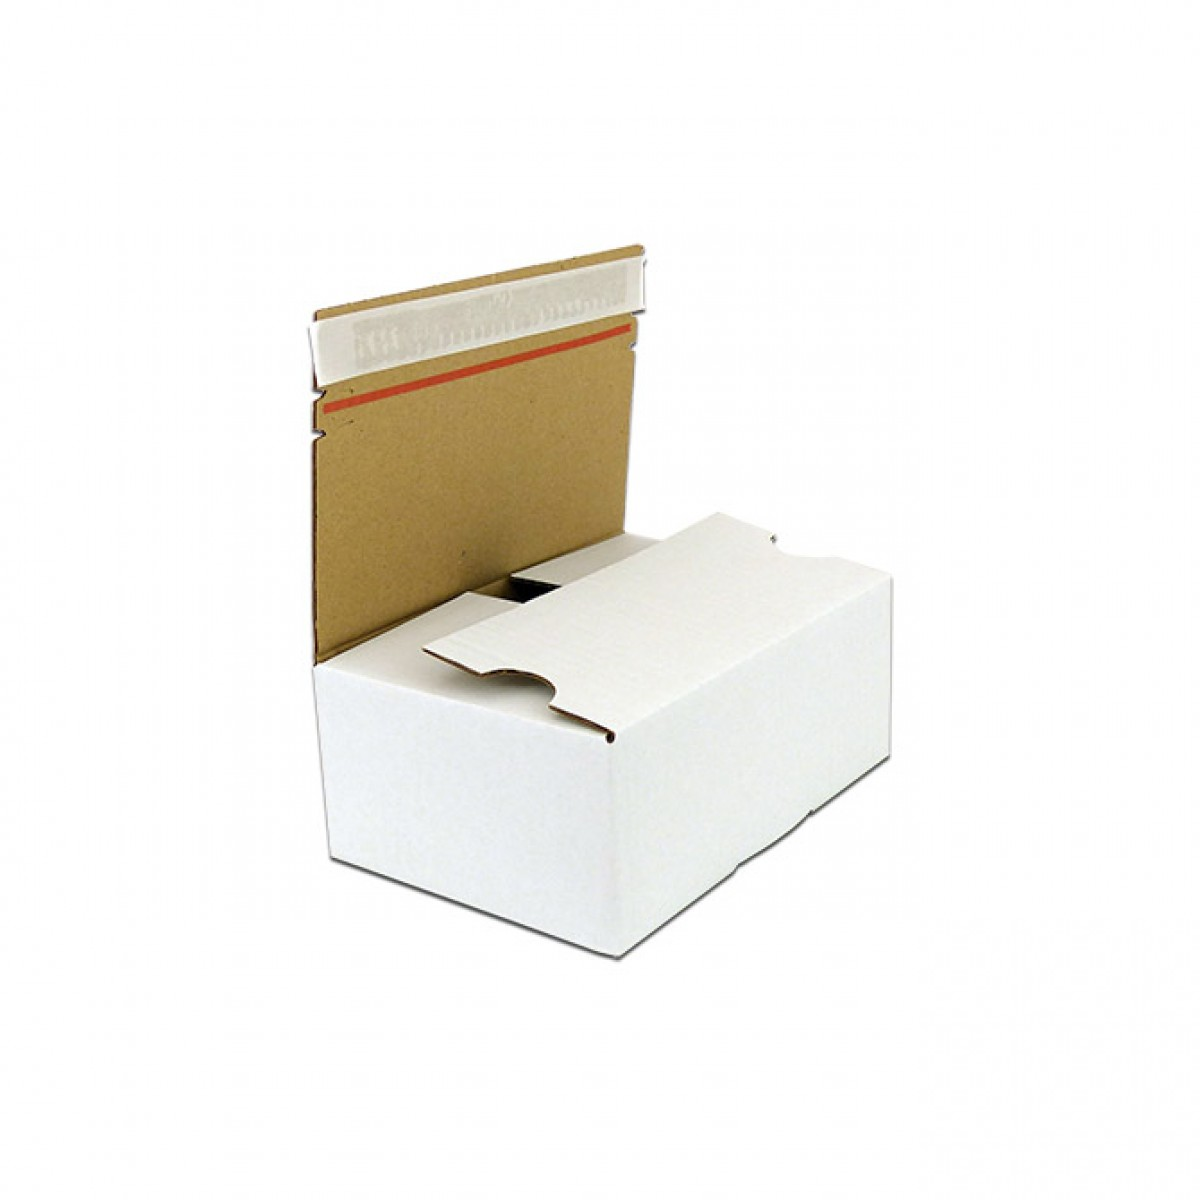 Easybox white 210 x 140 x 80 mm